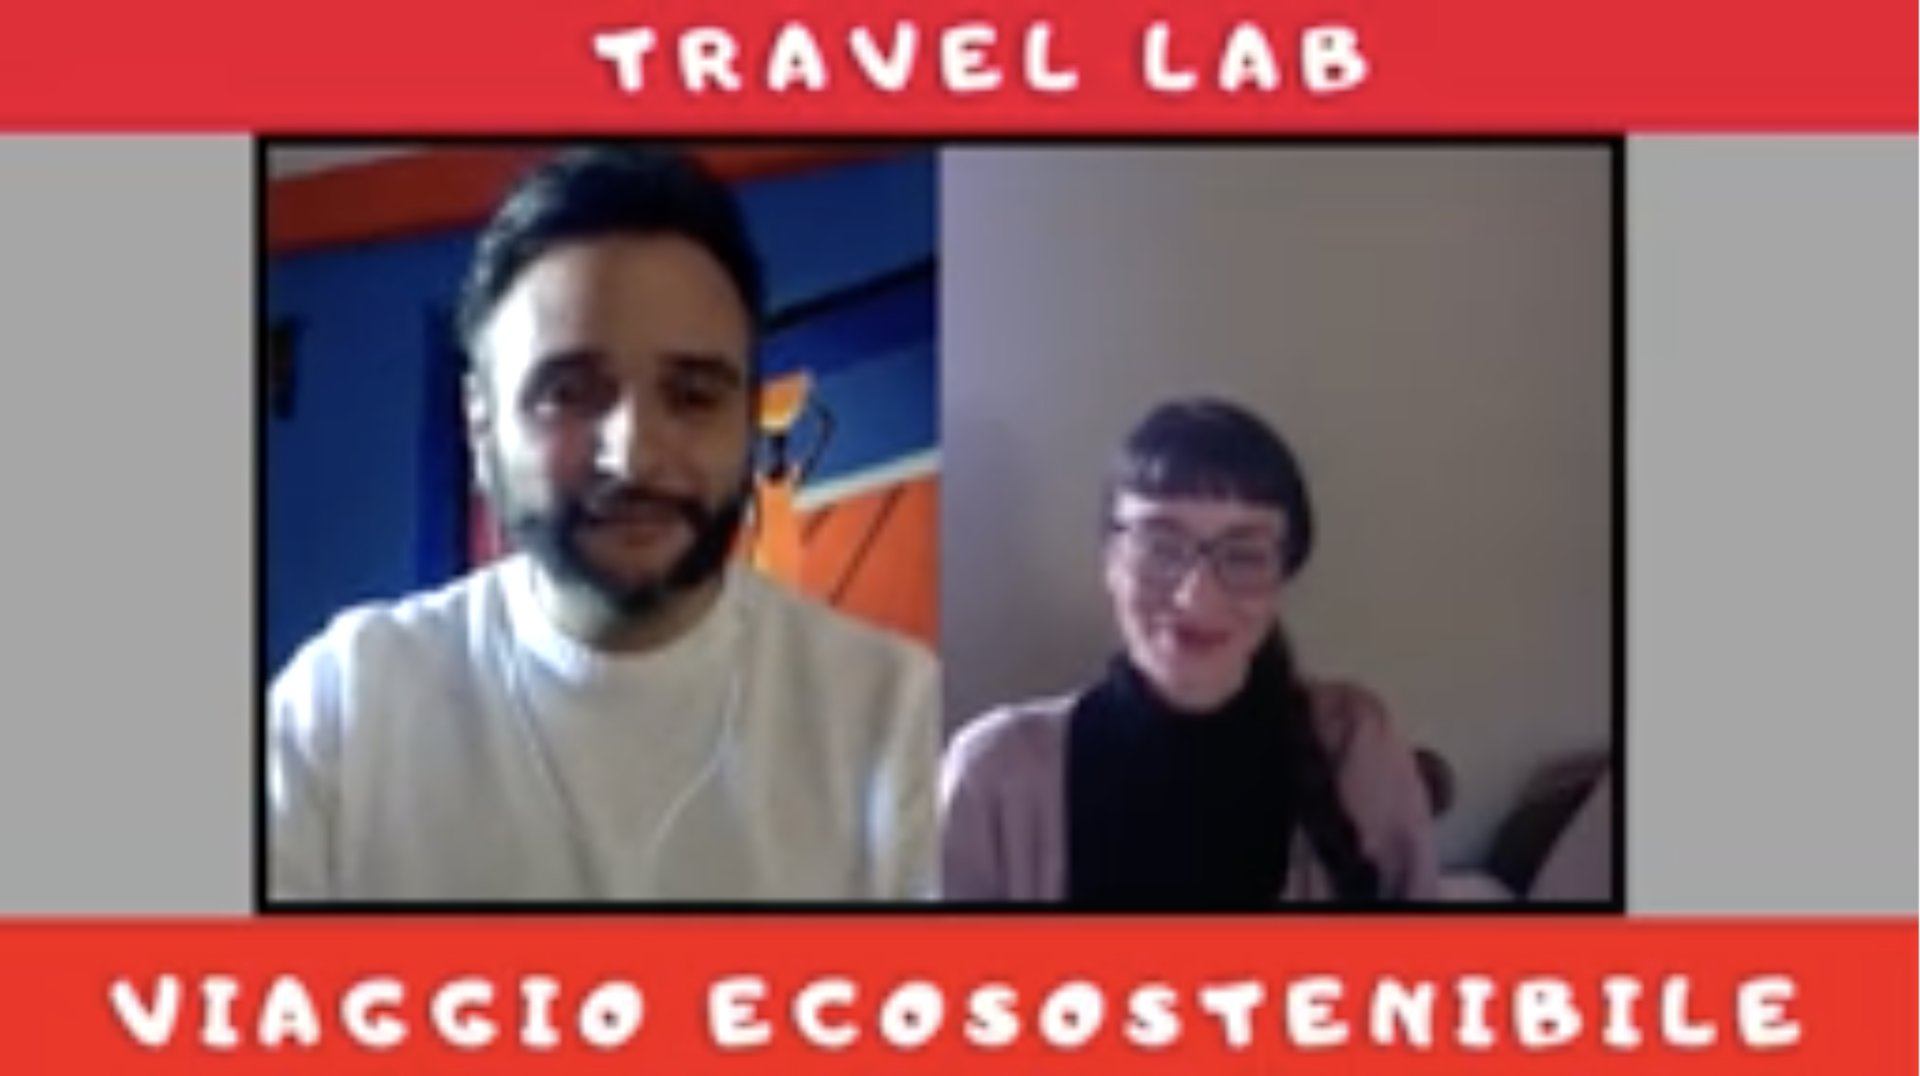 Viaggiare ecosostenibile - Travel Lab